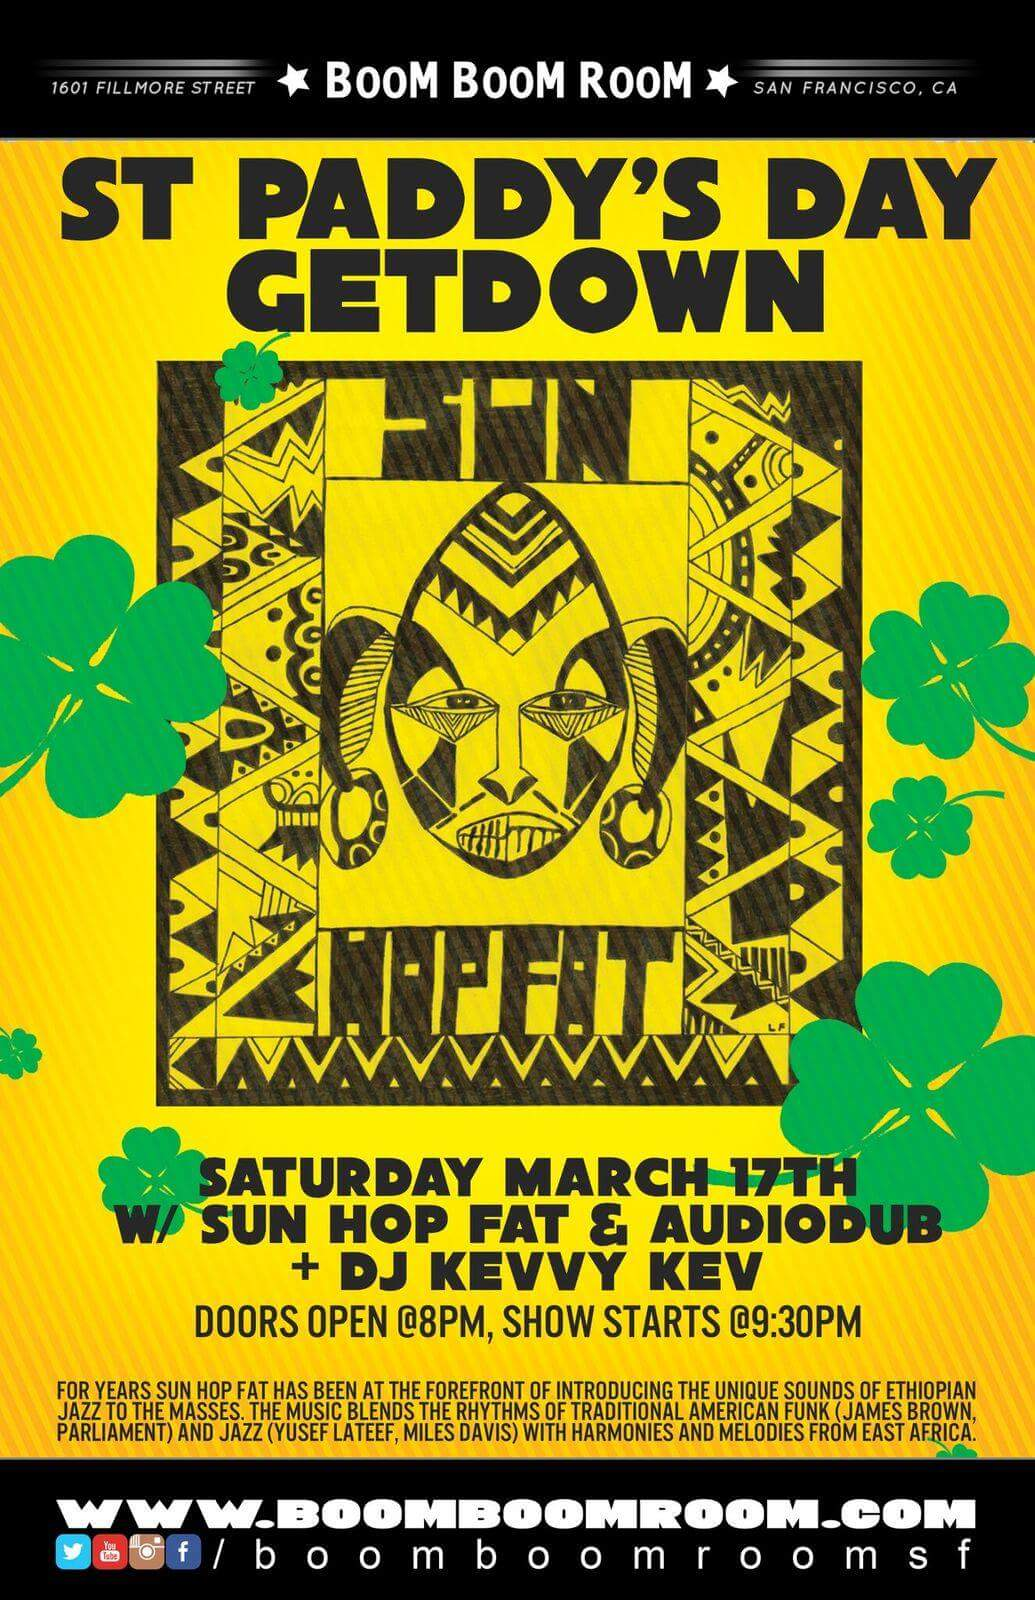 Sun Hop Fat St. Paddy's Get Down